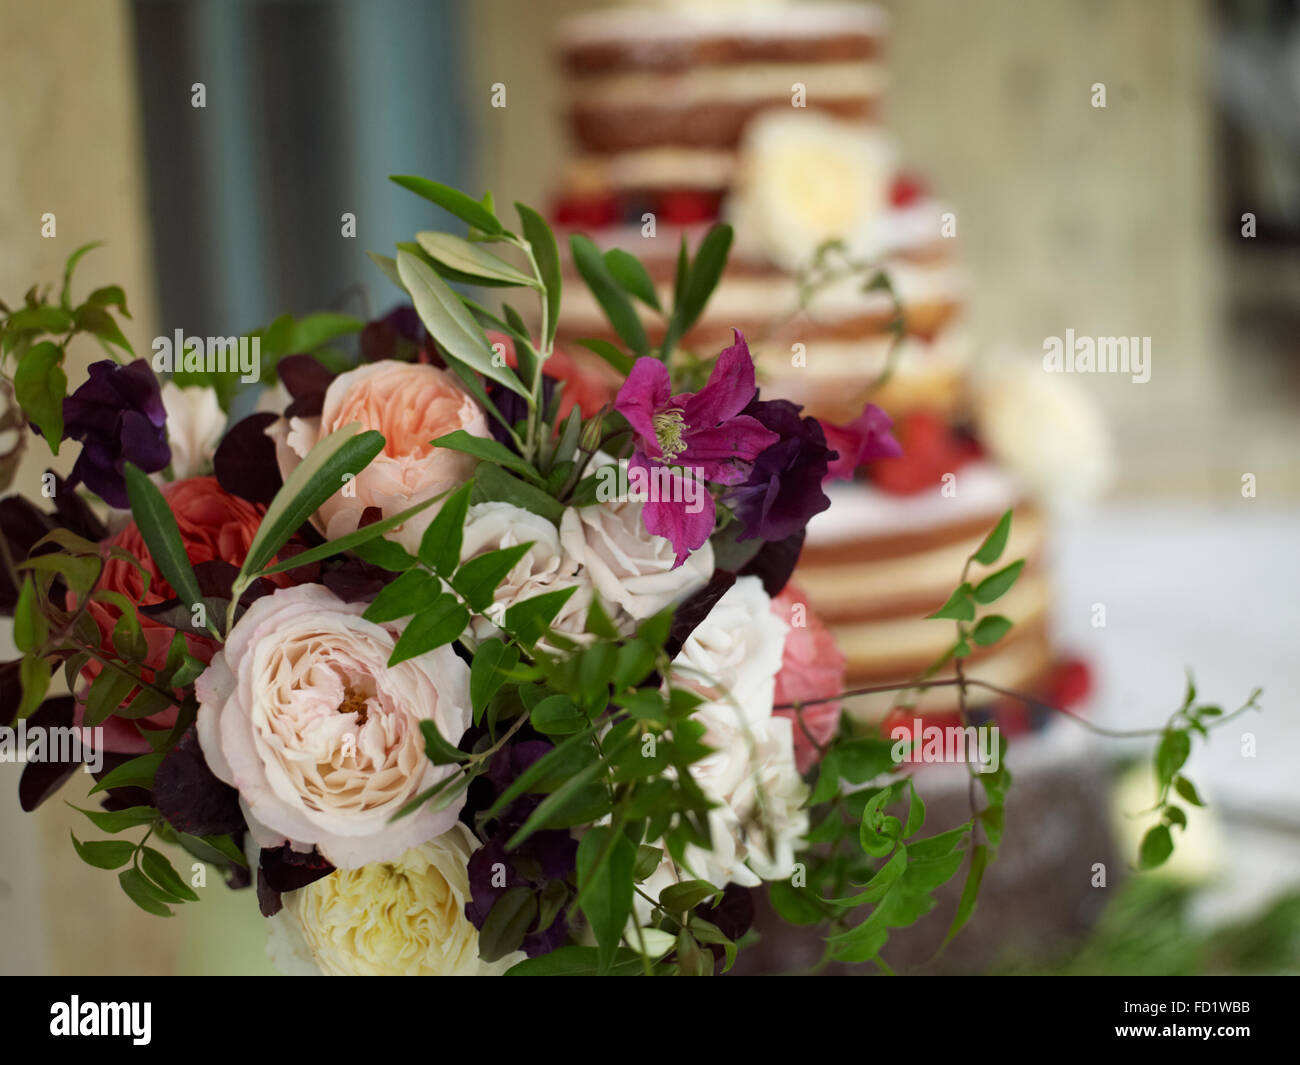 A luxurious wedding sponge cake with summer fruits and flowers - Stock Image